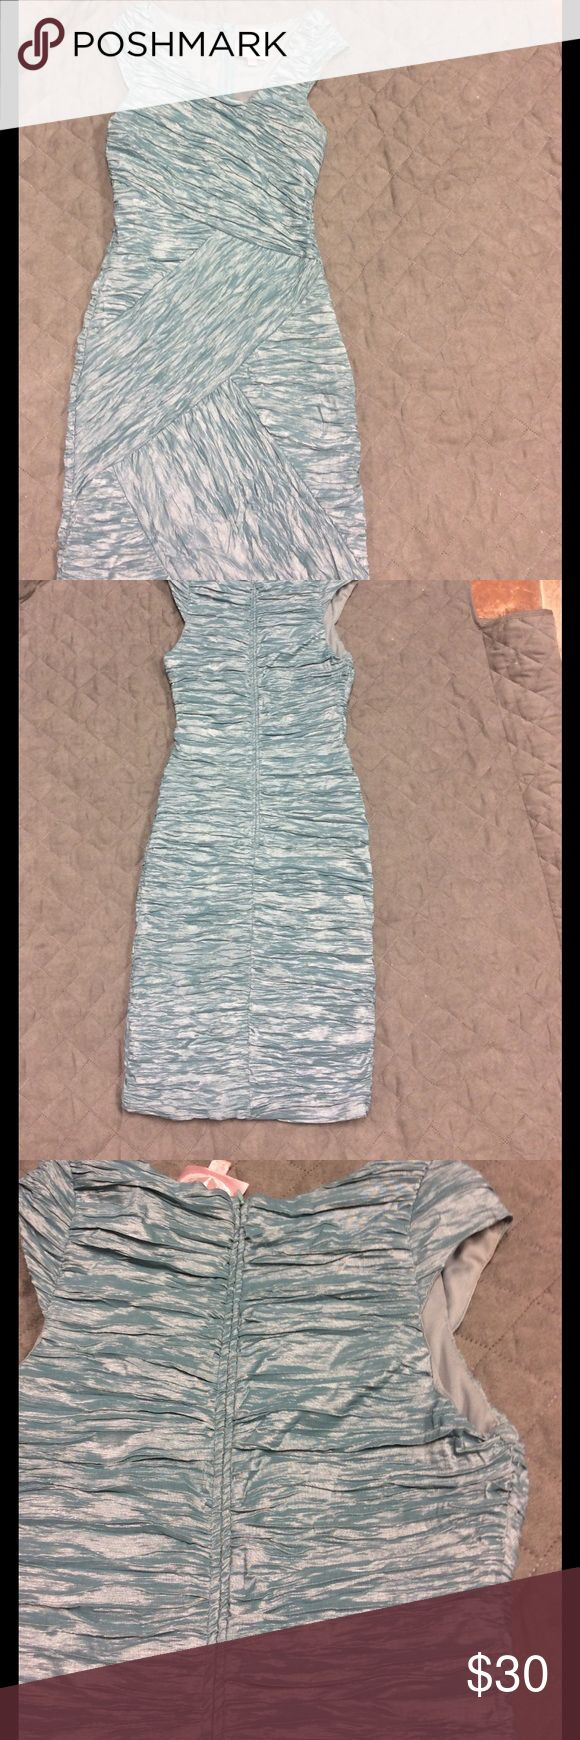 Light teal 👗 Dress Lovely form flattering light teal with asymmetrical neckline. Fabric shimmery silver/scrunchy layered. Soft lining. Zipper down back Size Small EUC. Hits bottom of knee. Romeo & Juliet Couture Dresses Asymmetrical